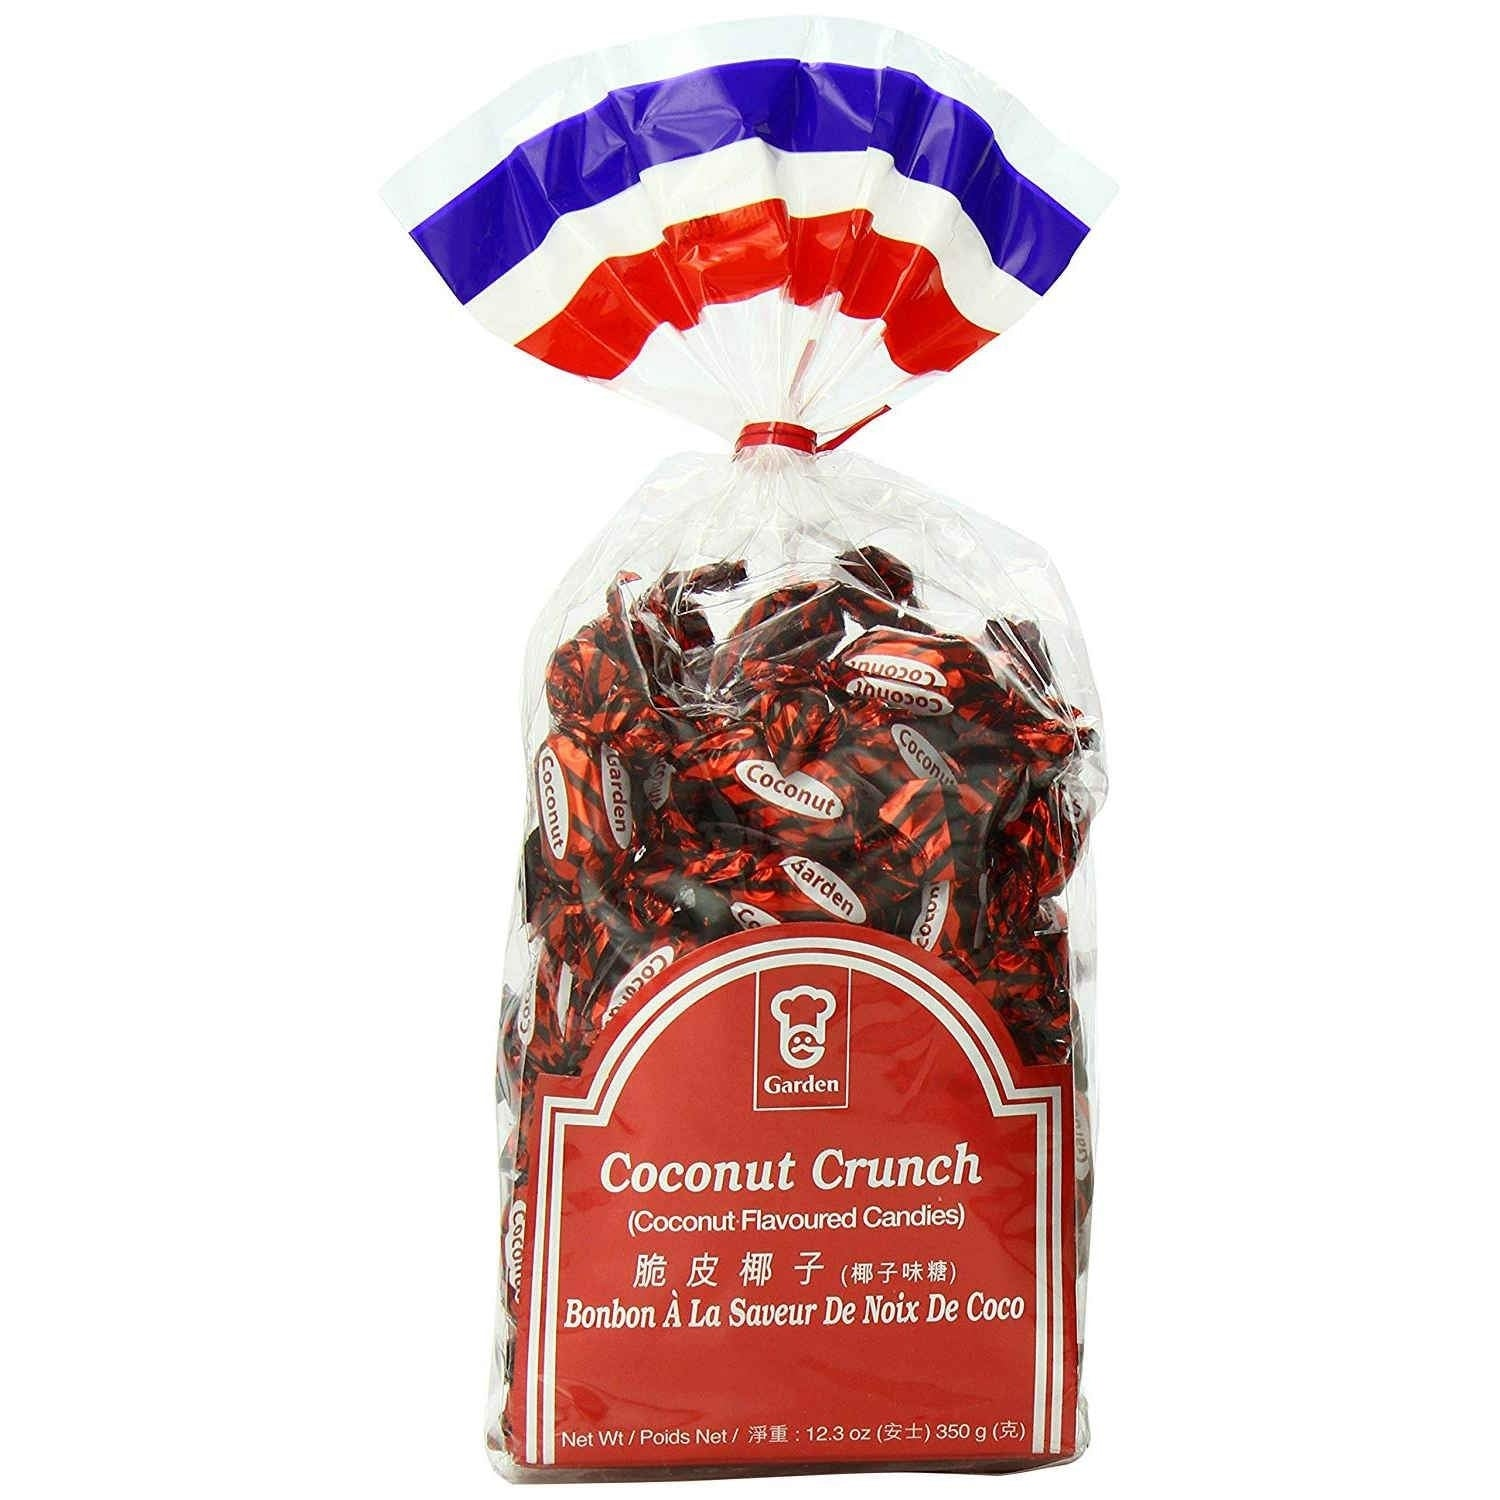 Garden Coconut Crunch Candy